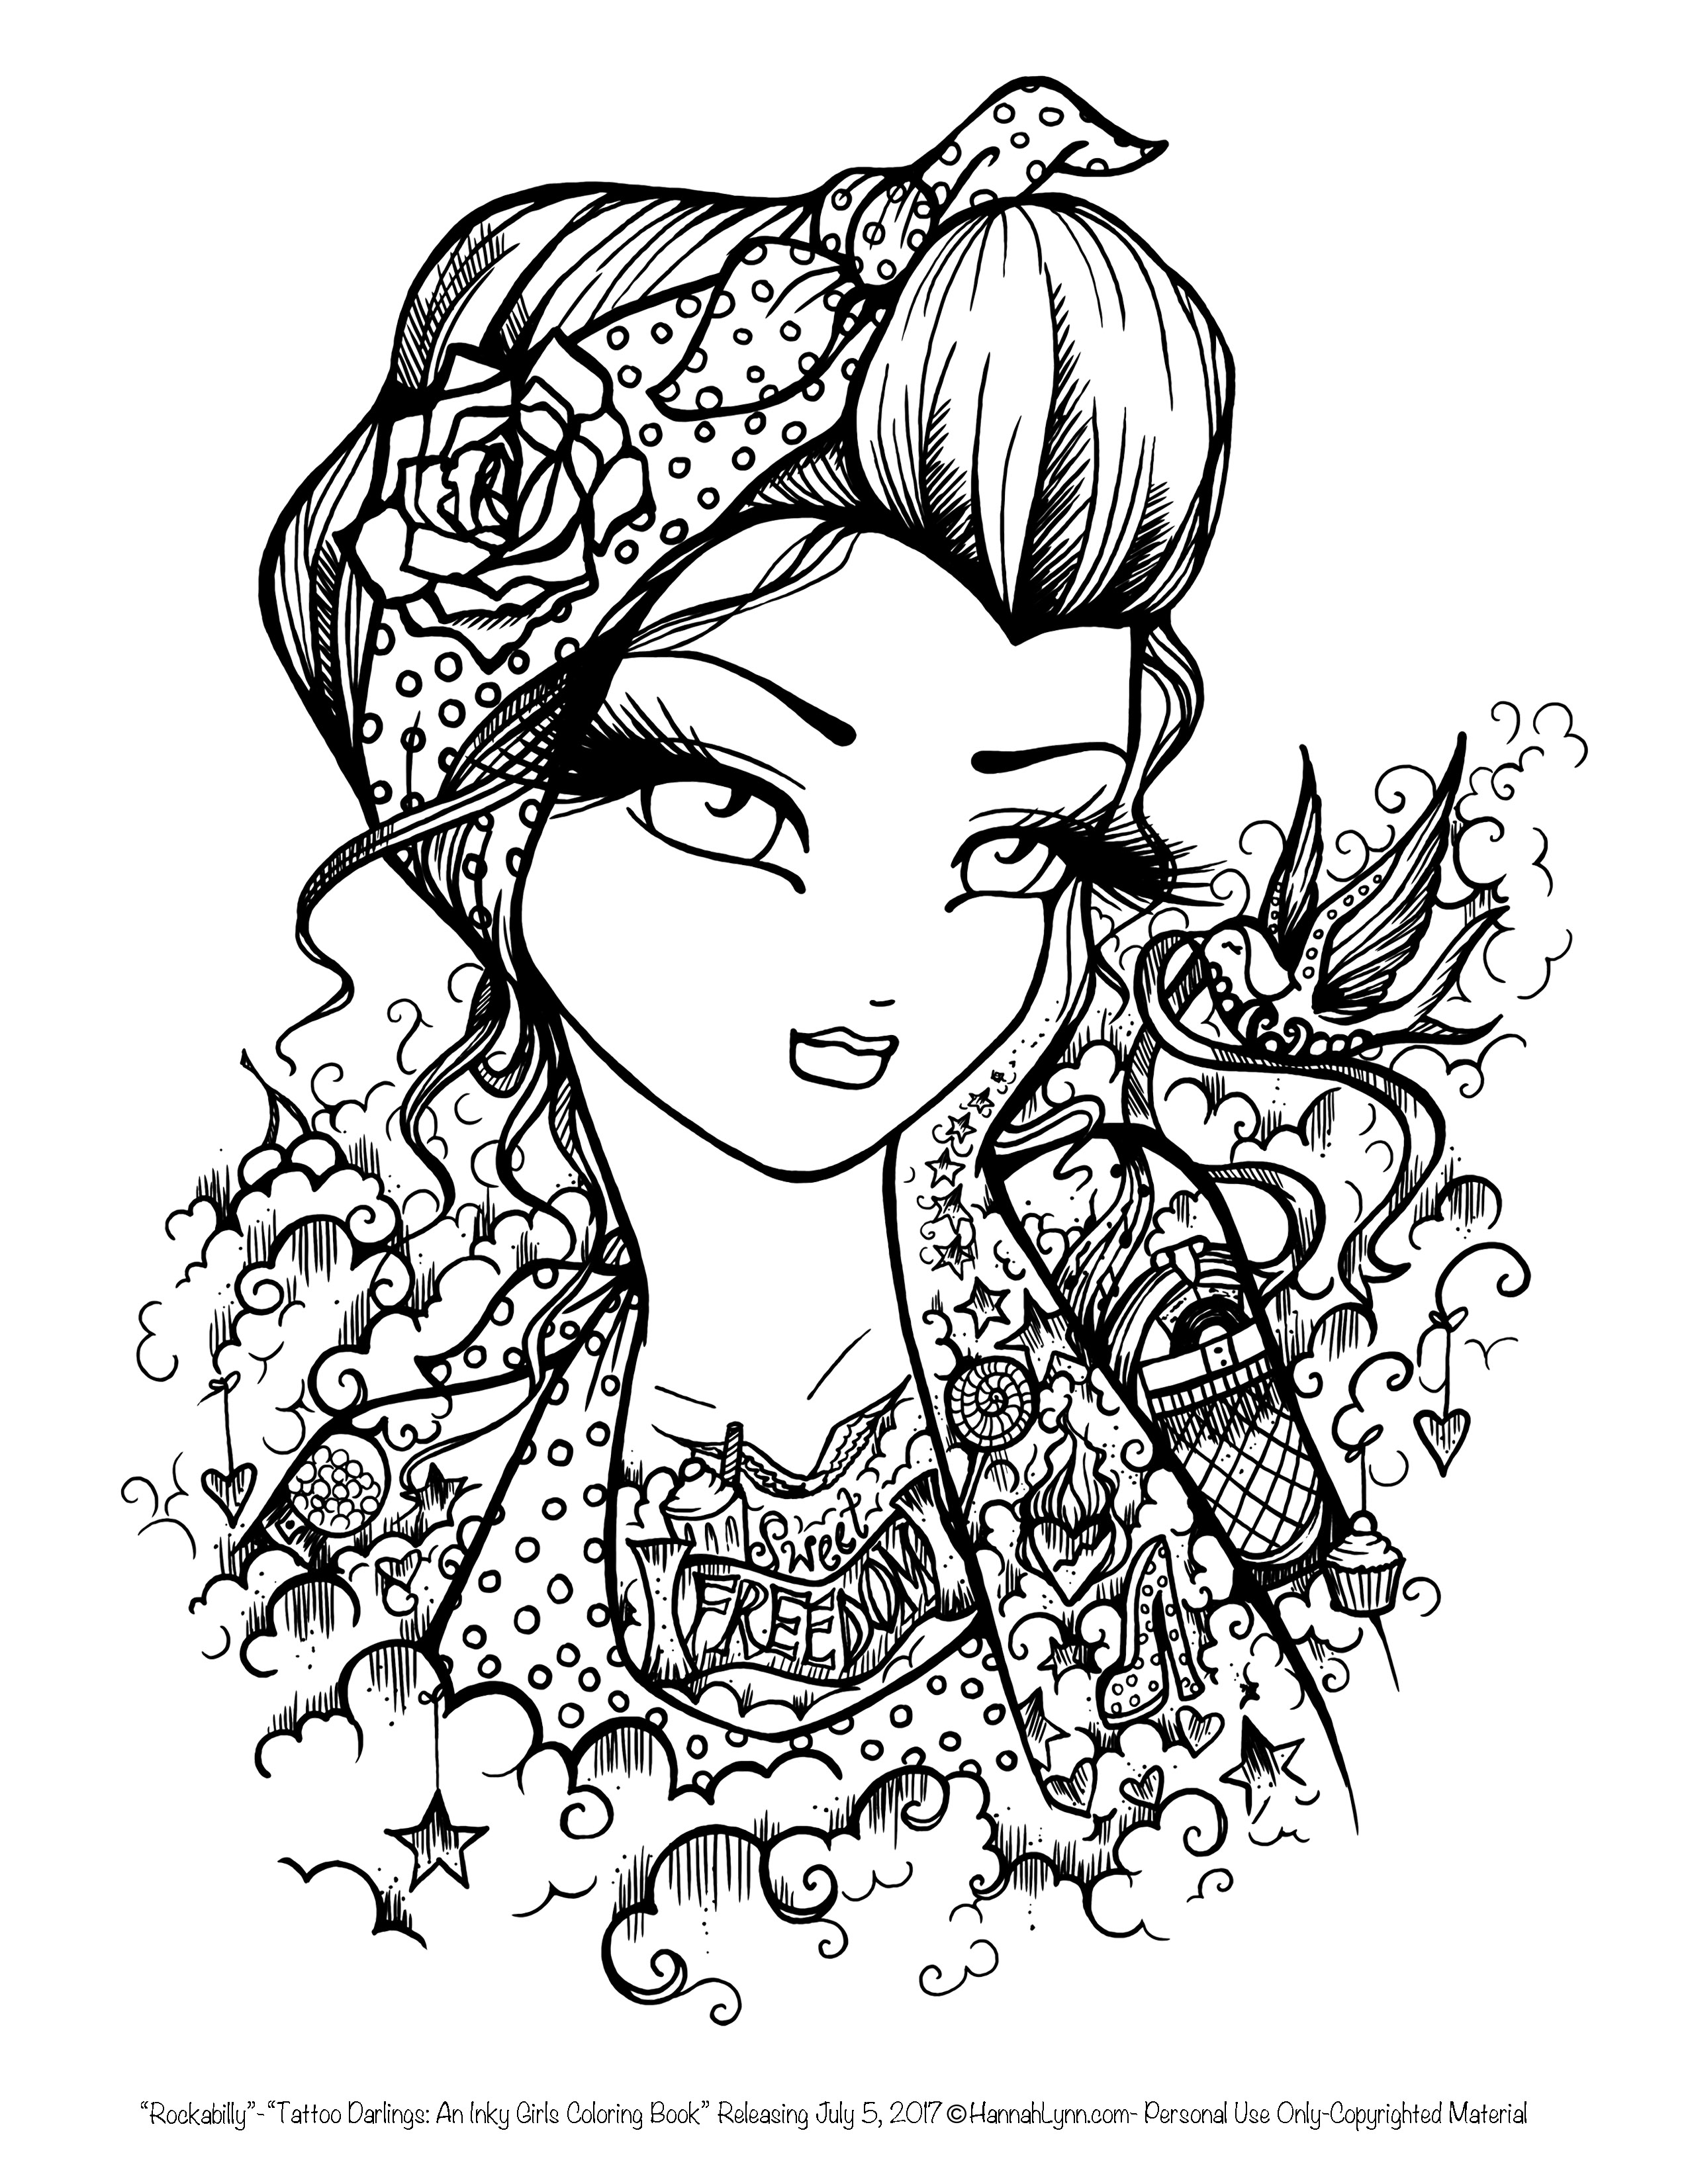 coloring pages for girls designs the best ideas for coloring pages for girls printable designs for coloring girls pages